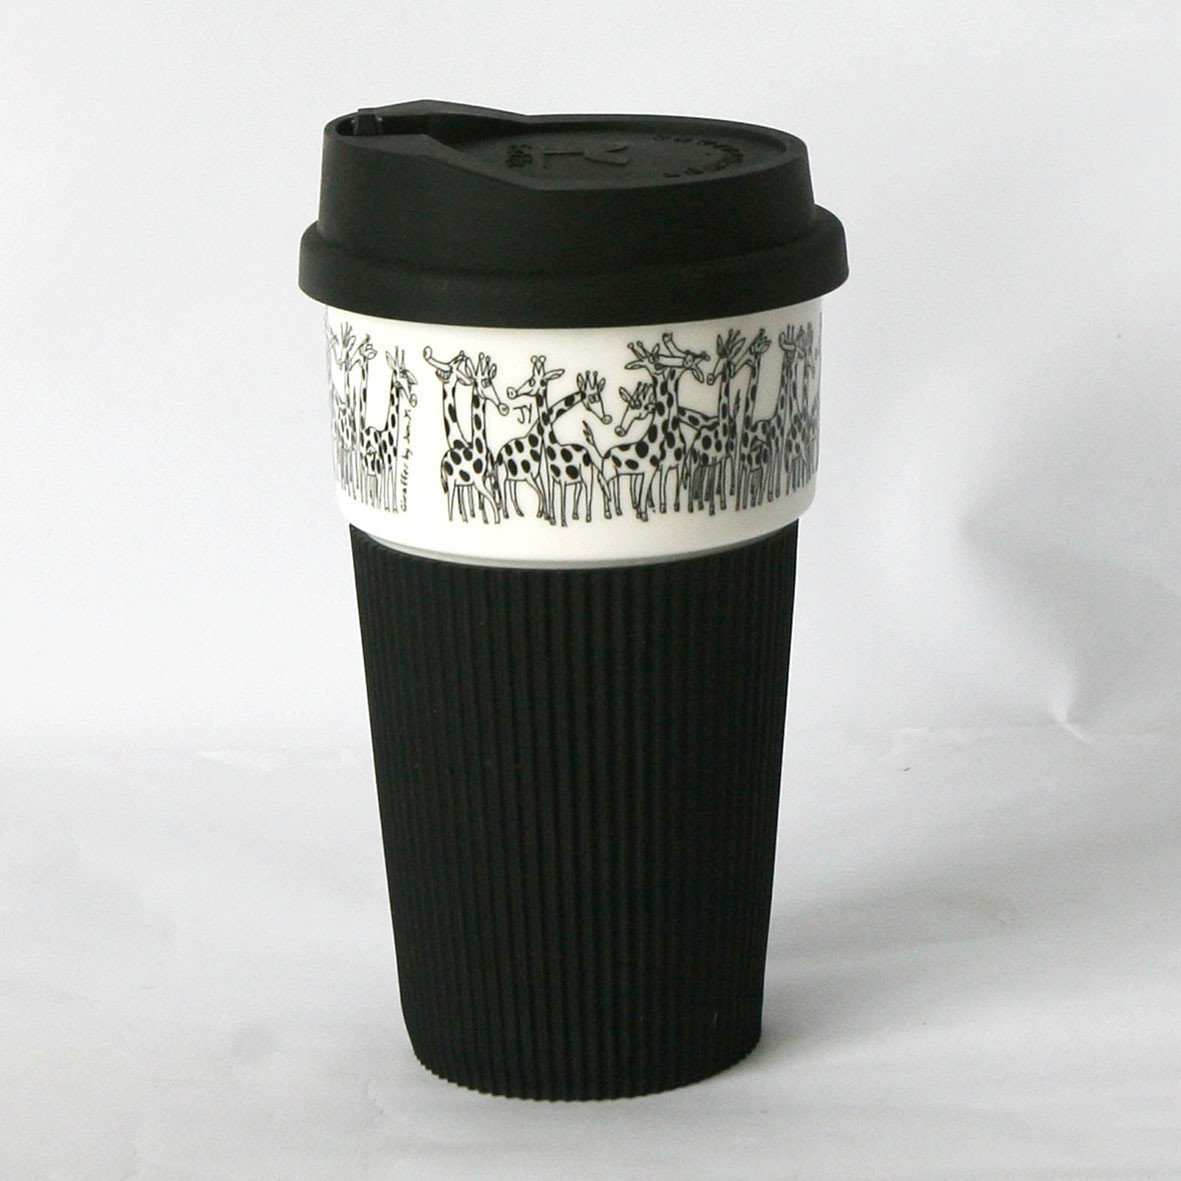 B&W Thermal Mug with Silicon Lid - Giraffes - Naiise